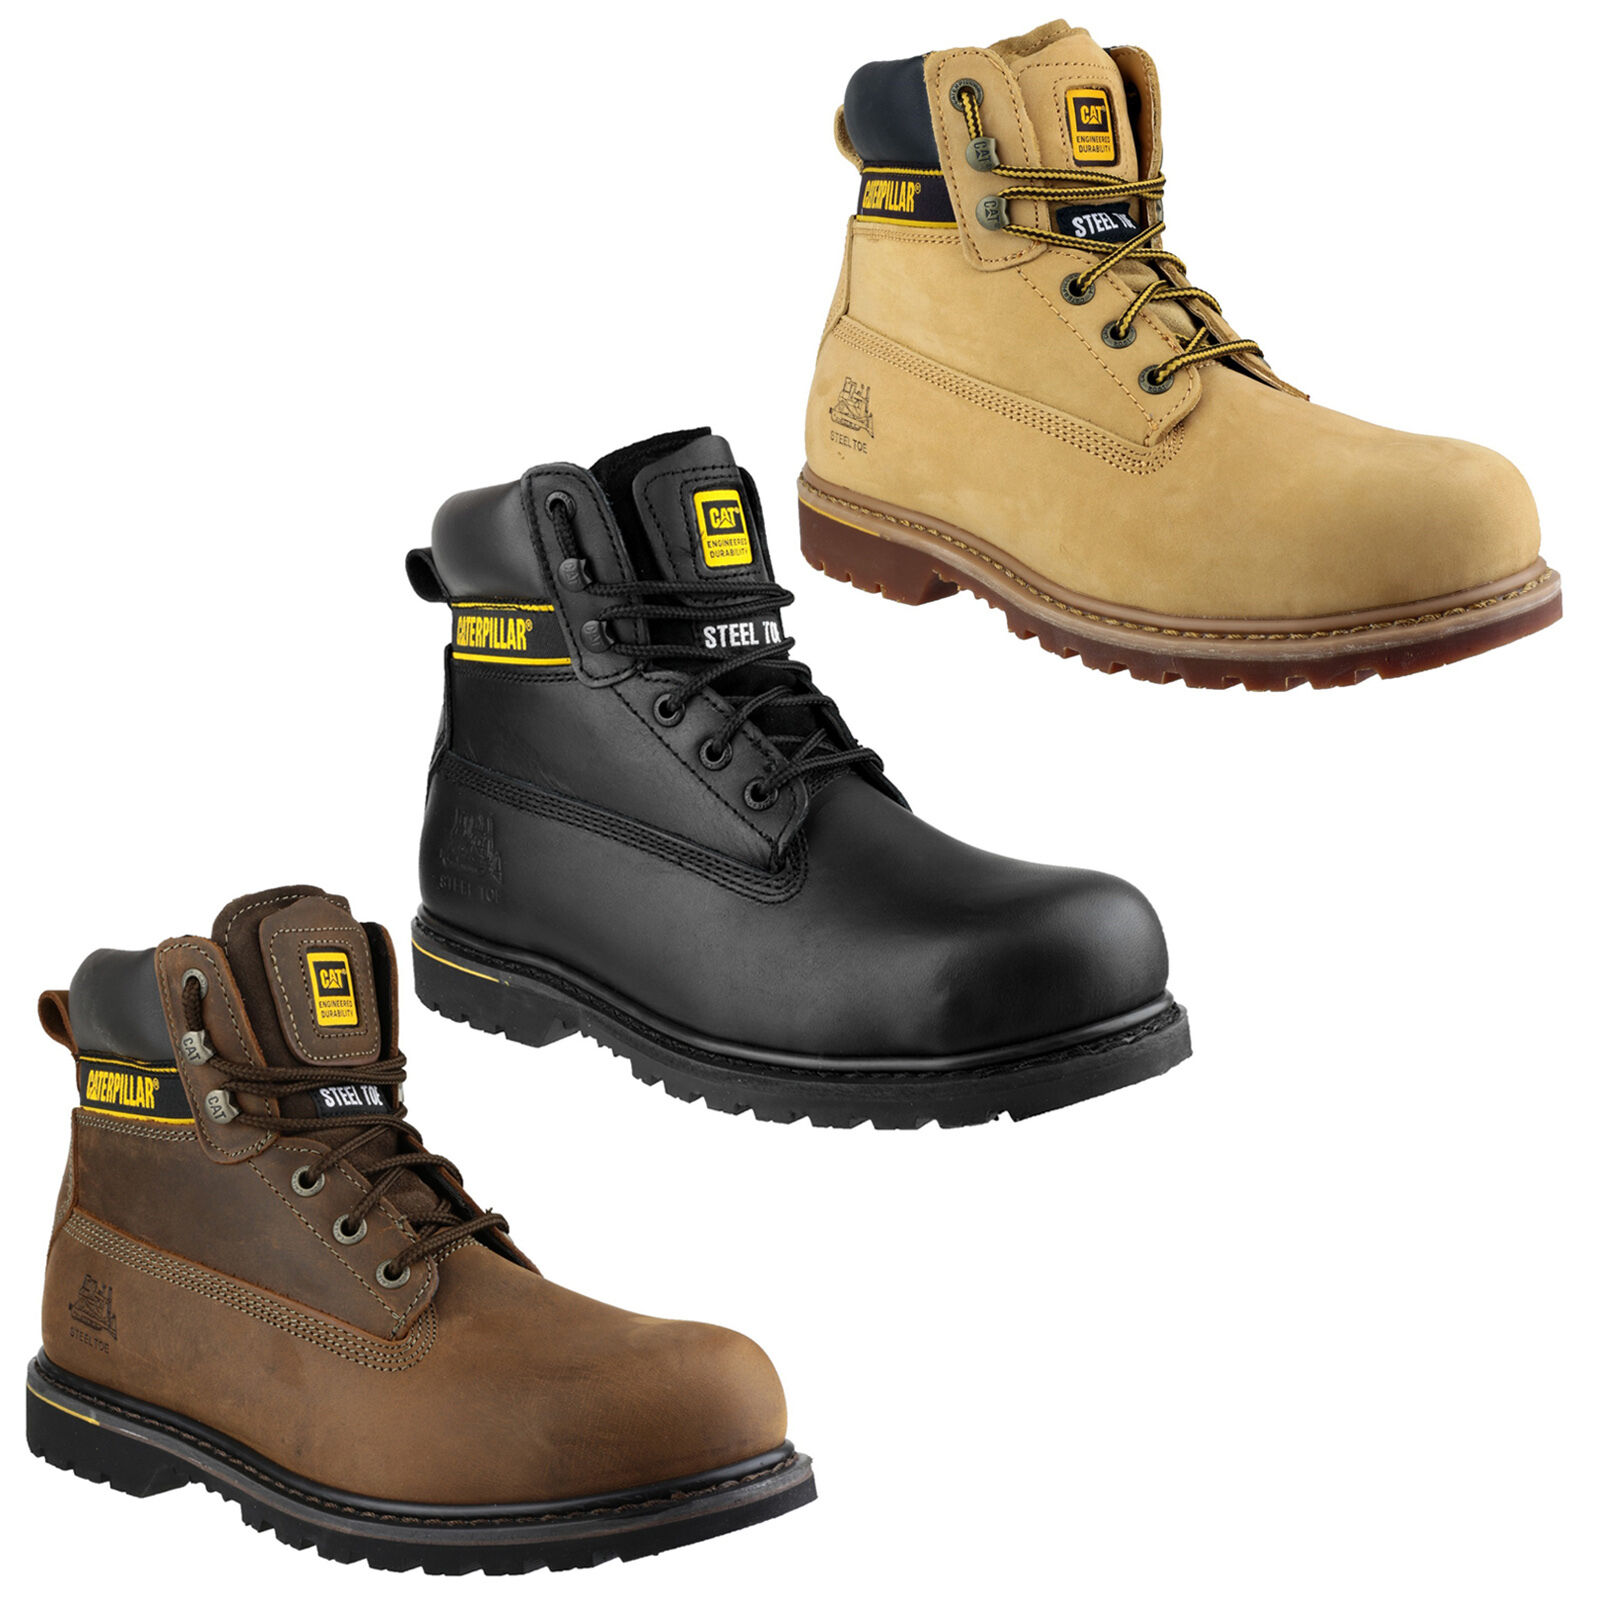 CAT Caterpillar Holton da uomo di sicurezza in acciaio Puntale Work Boot uk6-15